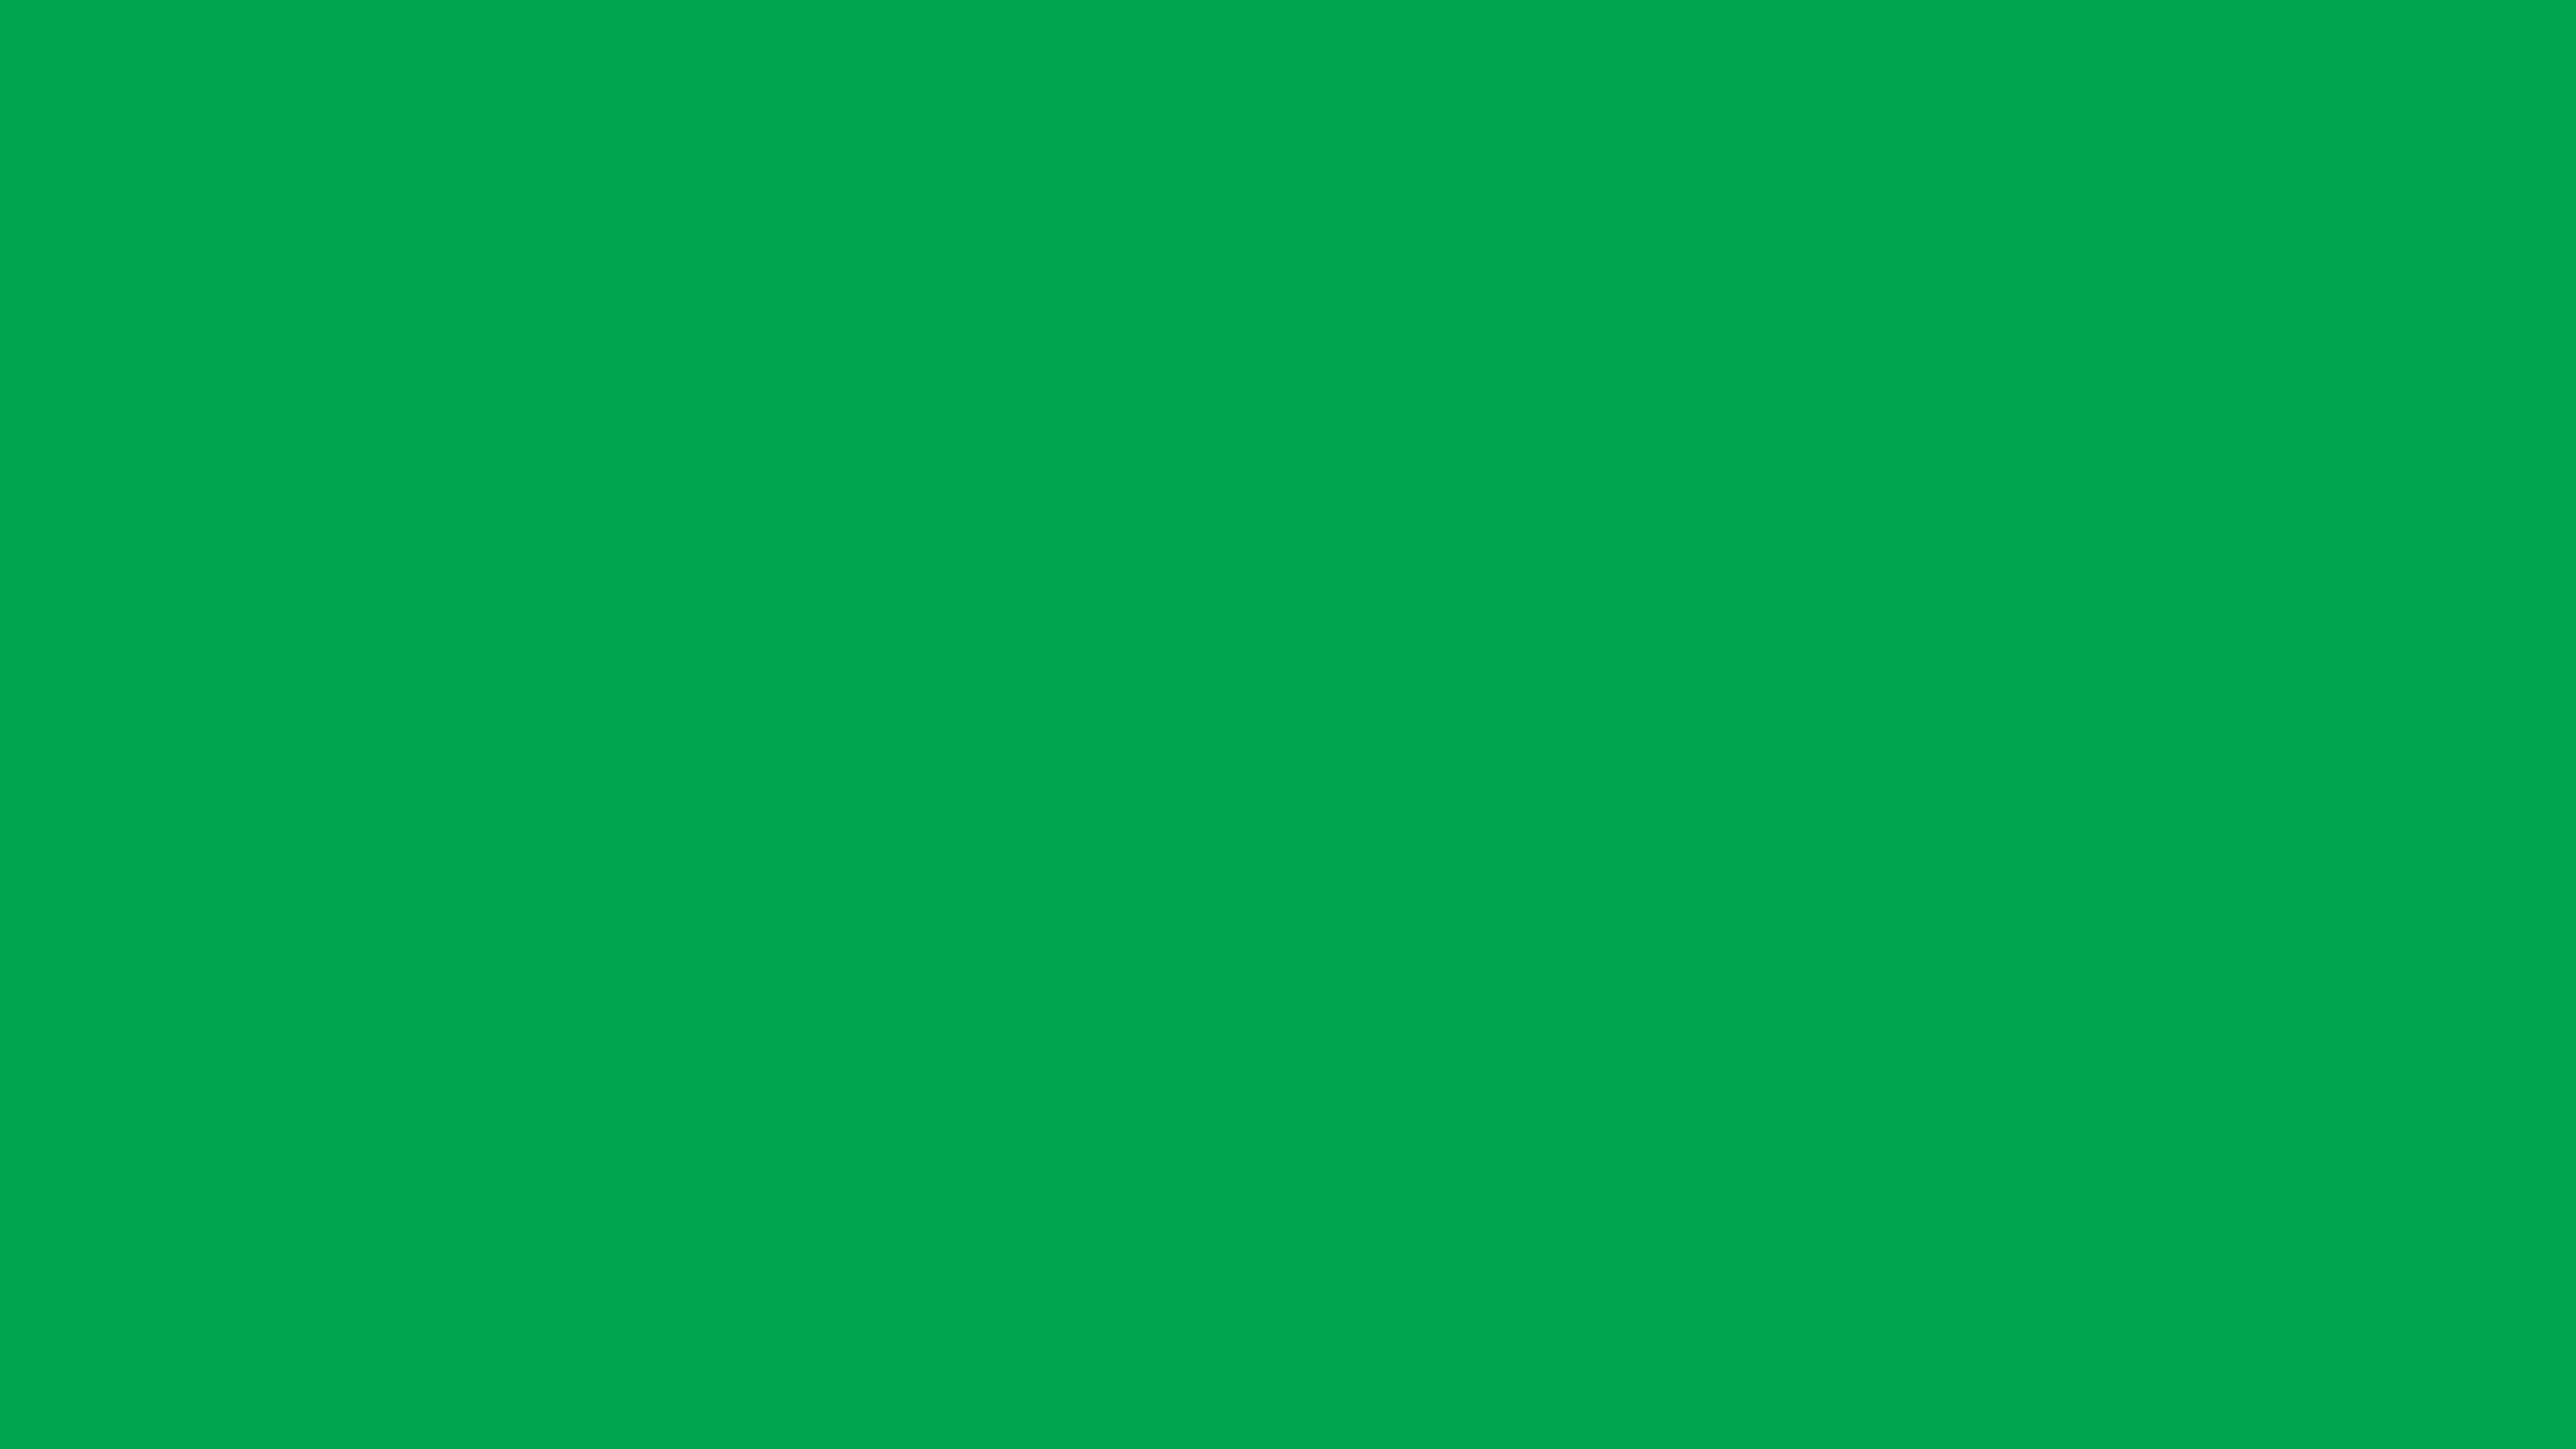 4096x2304 Green Pigment Solid Color Background